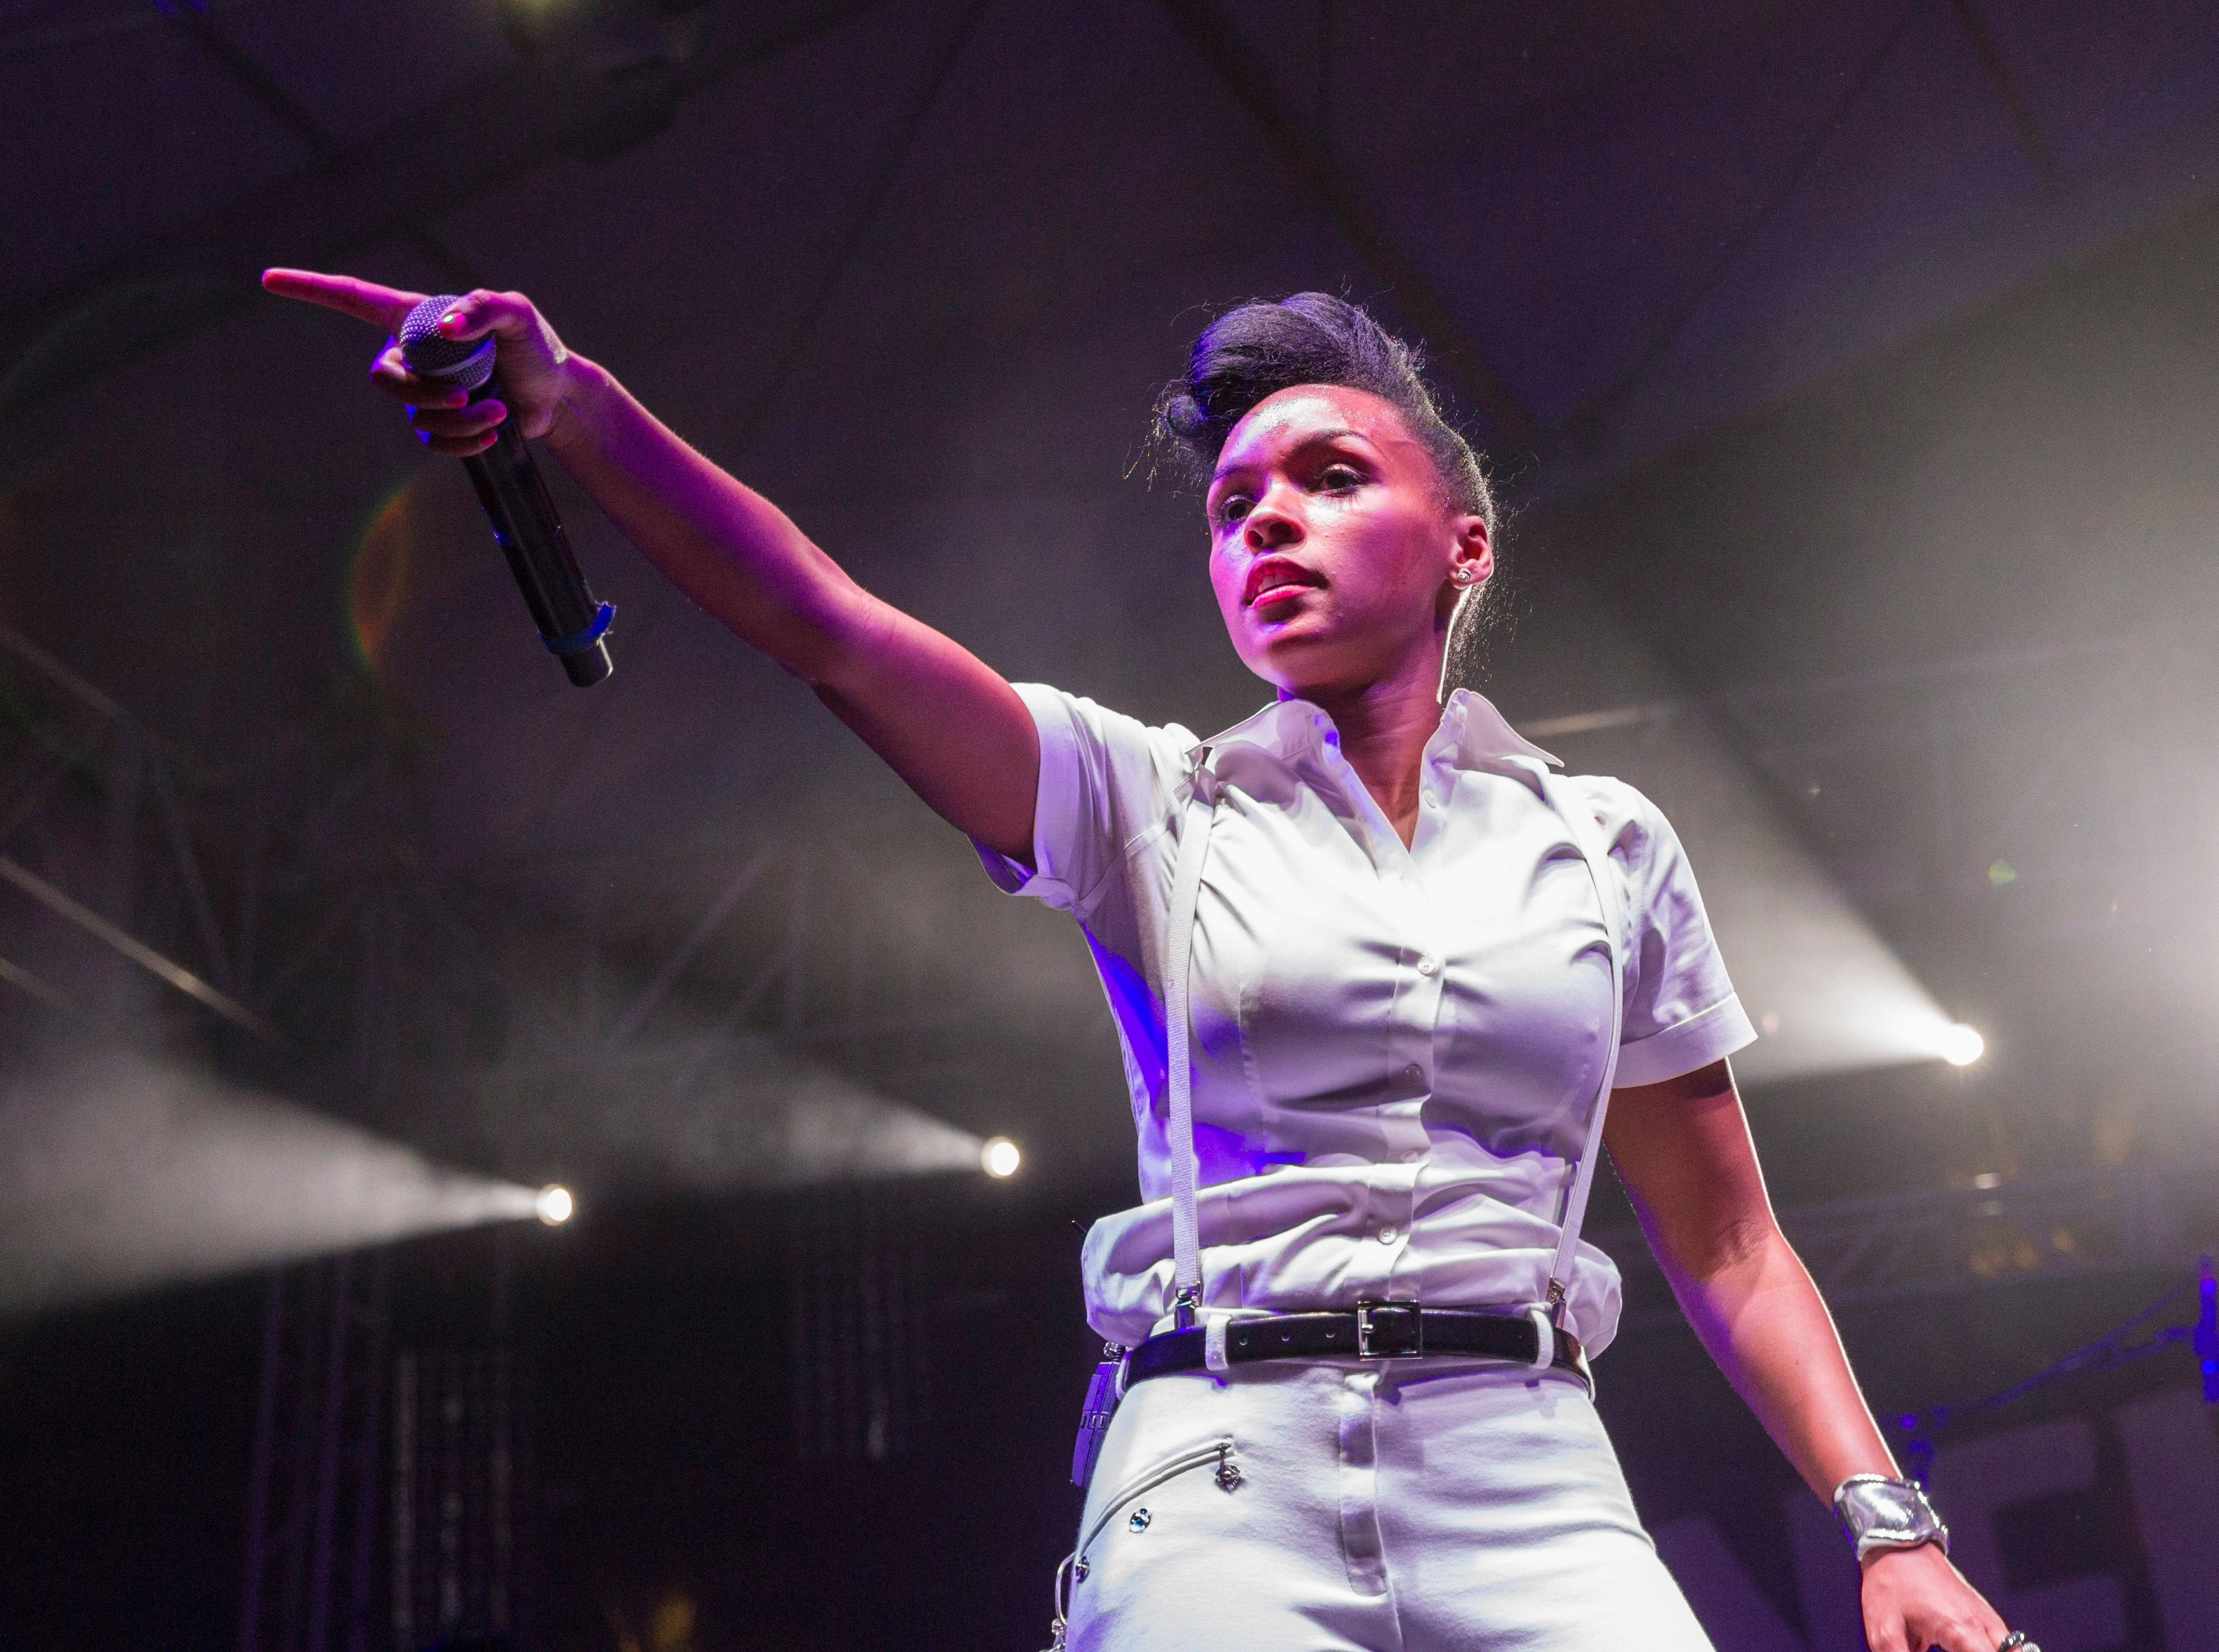 Singer Janelle Monae performs at 2013 Coachella Valley Music And Arts Festival - Weekend 2 at the Empire Polo Club on April 20, 2013 in Indio, California.